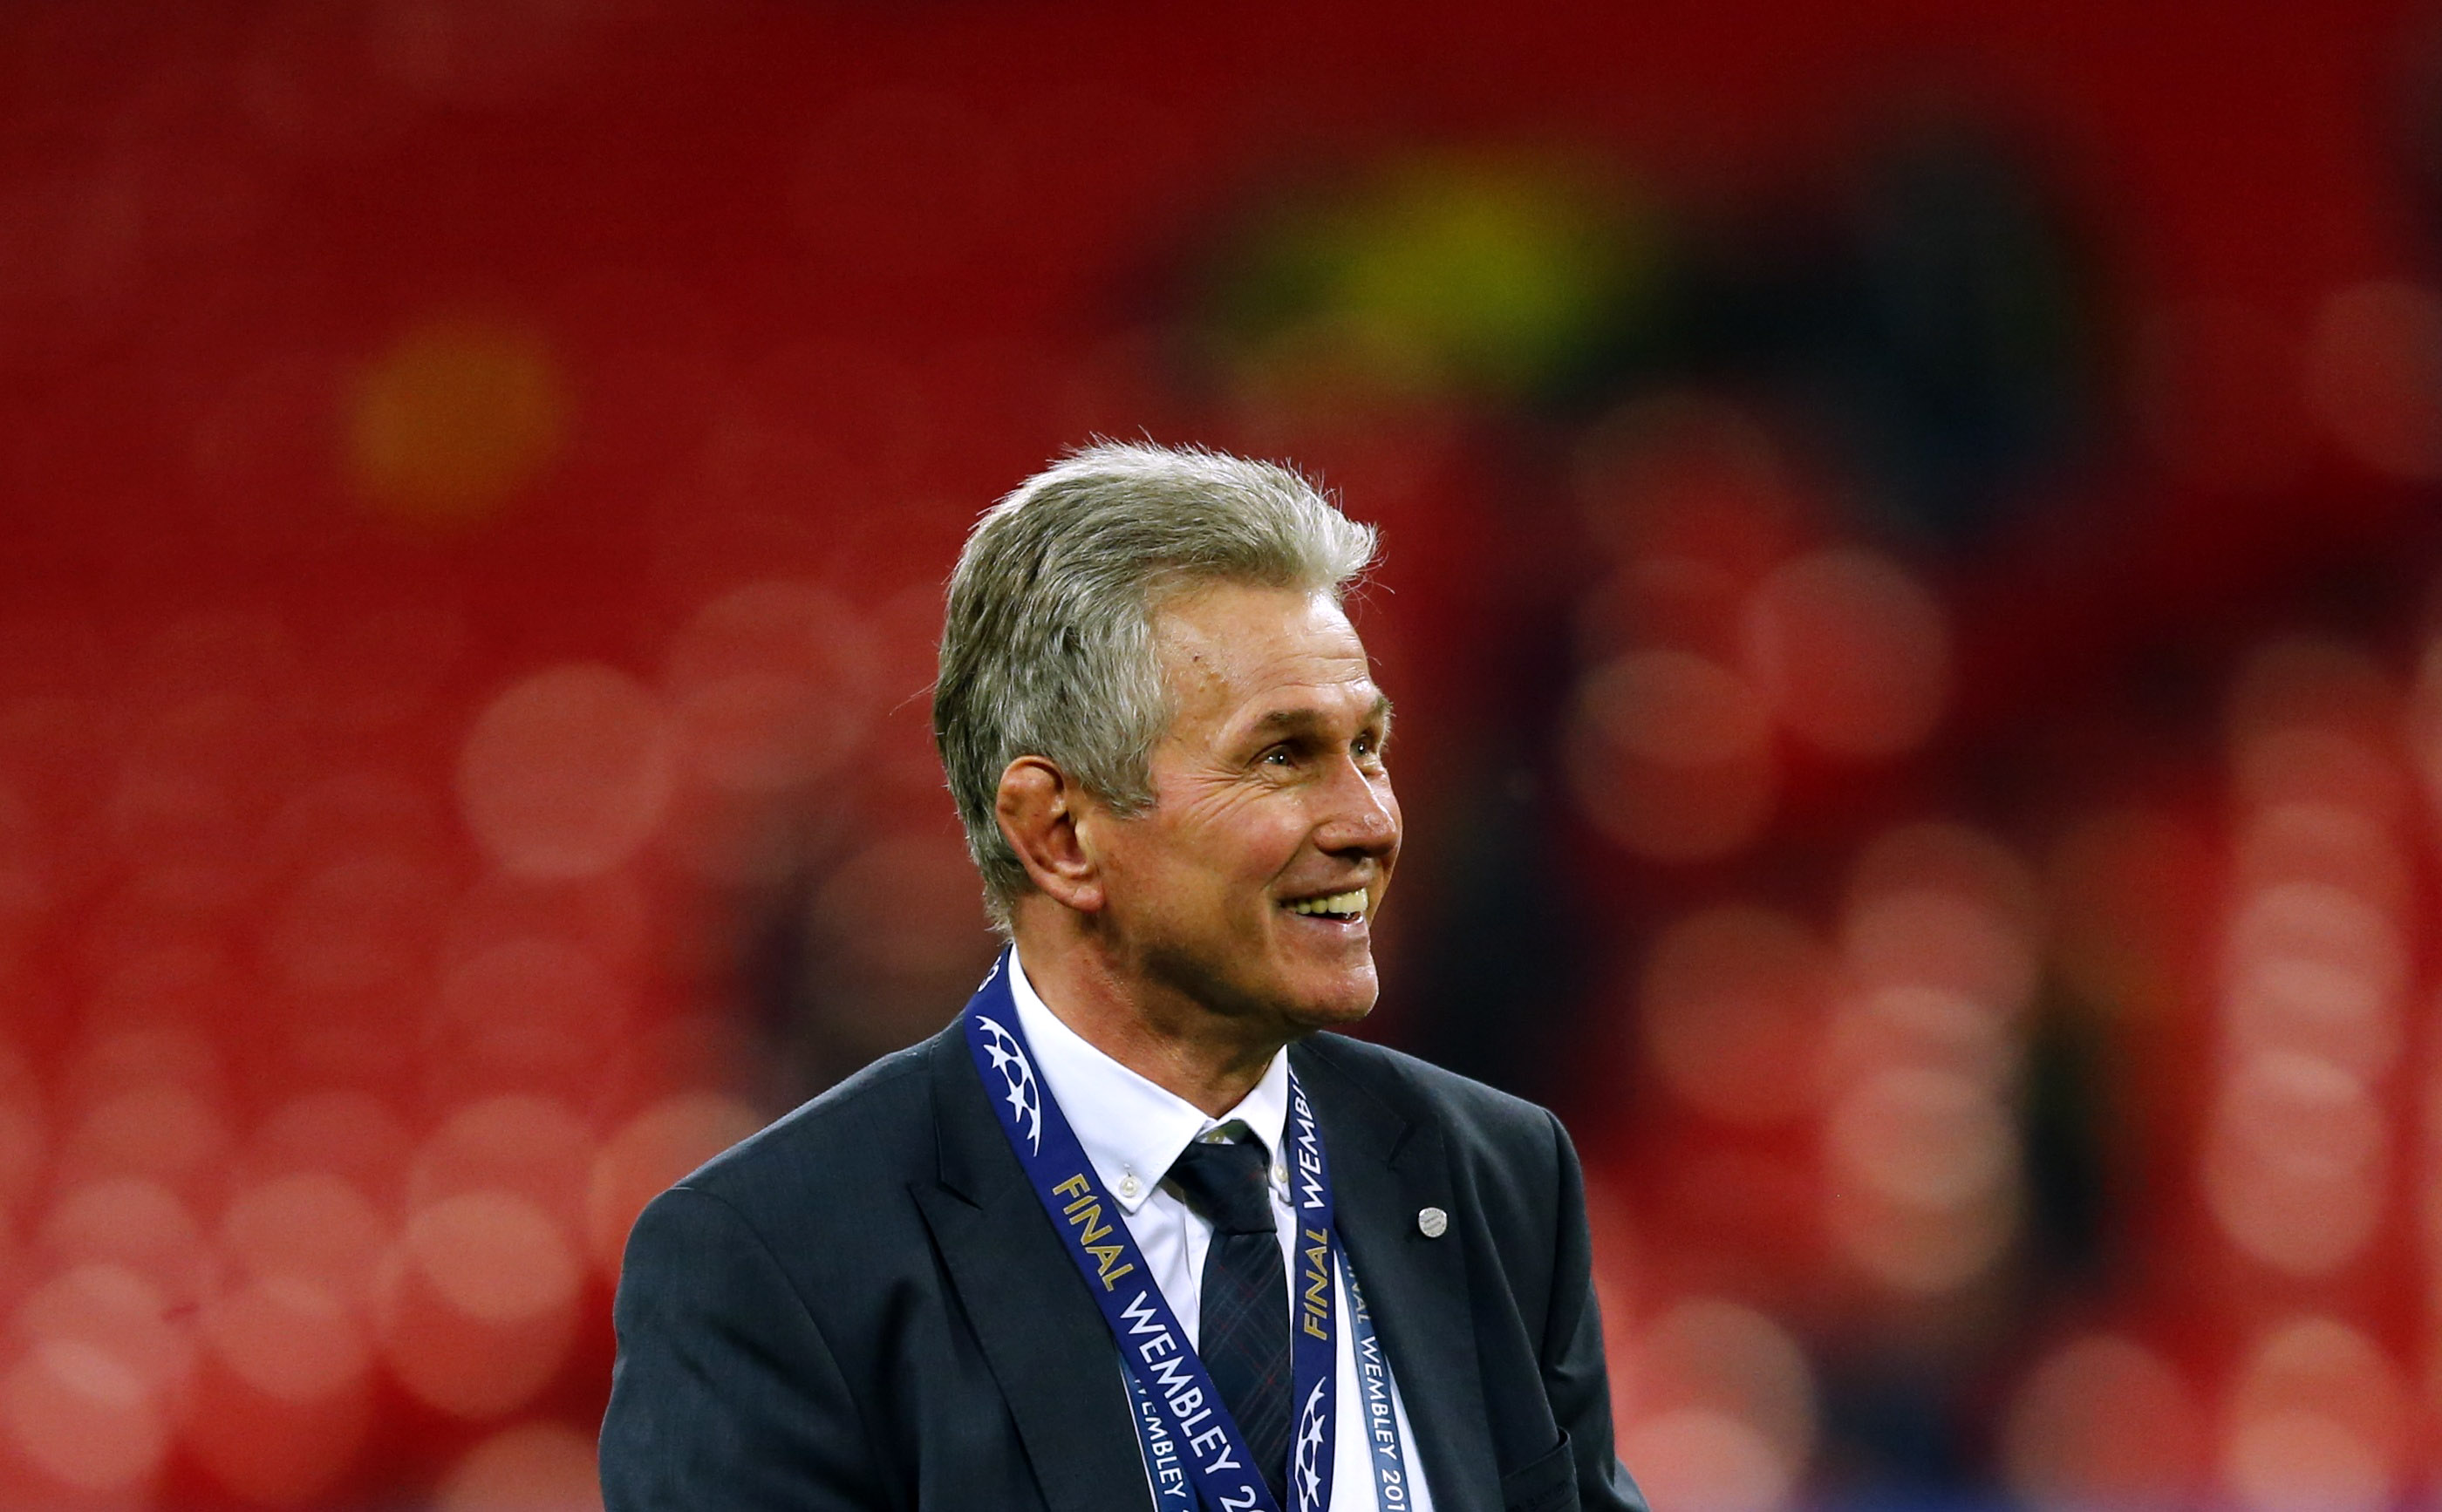 Bayern Munich's coach Heynckes celebrates after winning Champions League final soccer match against Borussia Dortmund in London